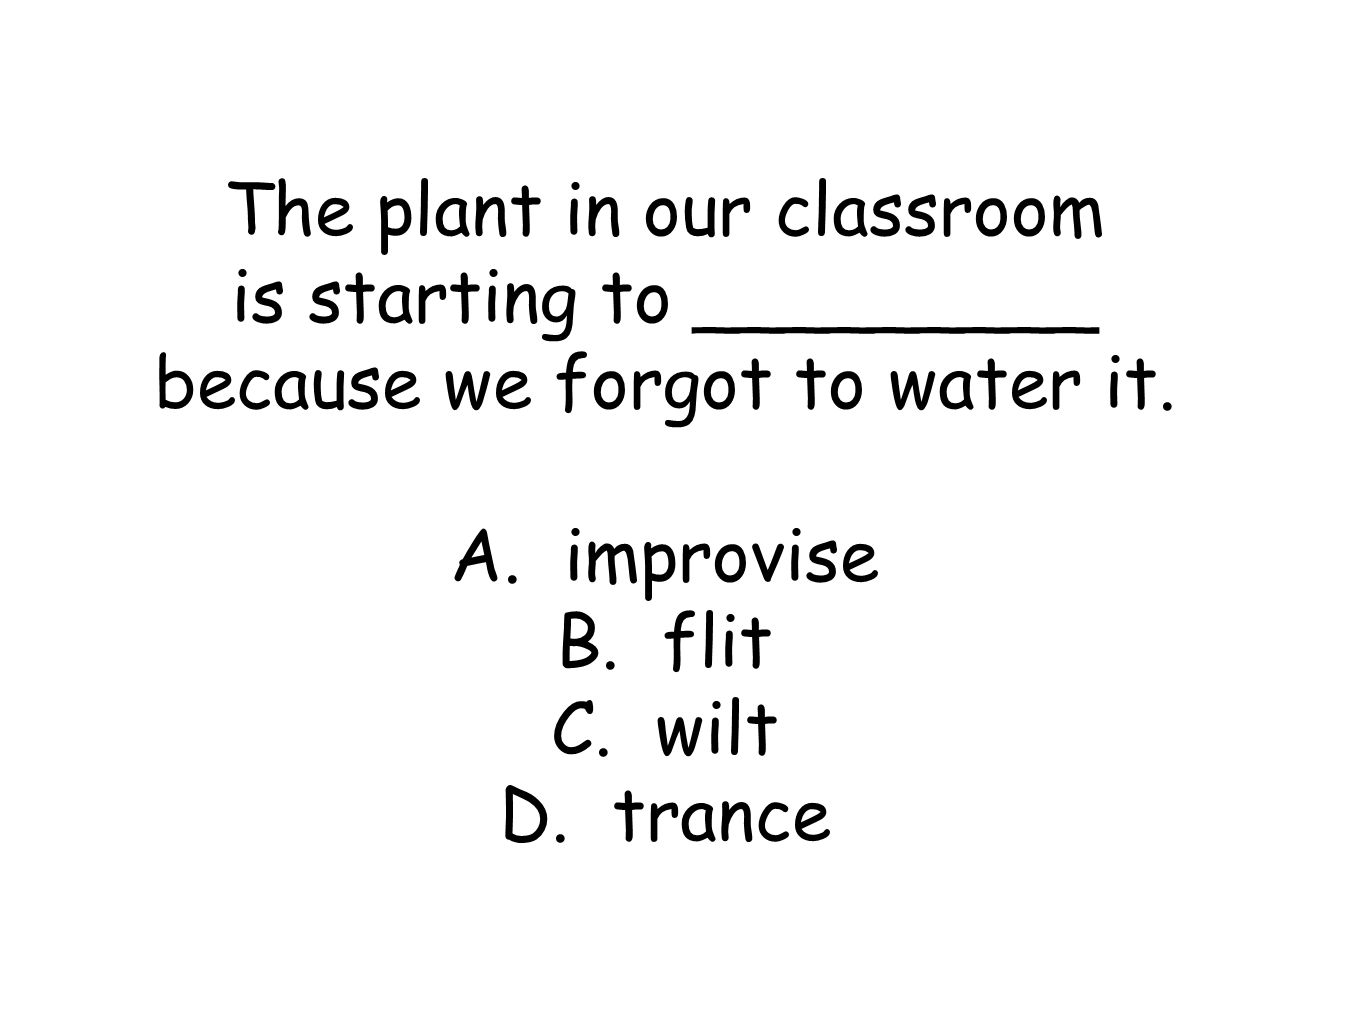 The plant in our classroom is starting to _________ because we forgot to water it.